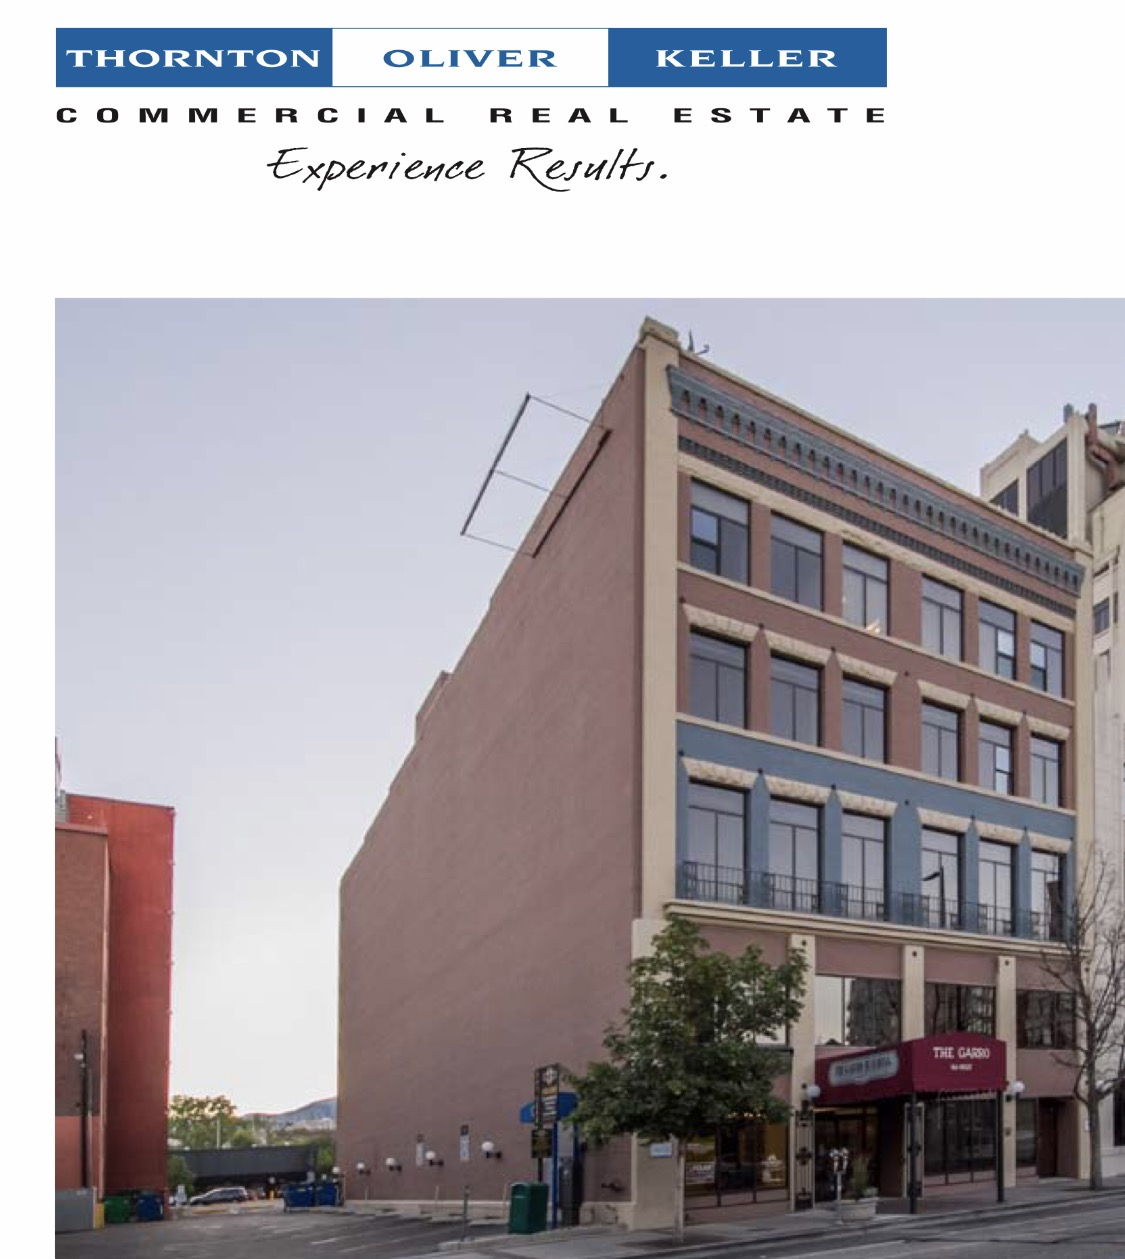 The Garro building on Jefferson street was one of the properties sold. Phot via TOK flyer.